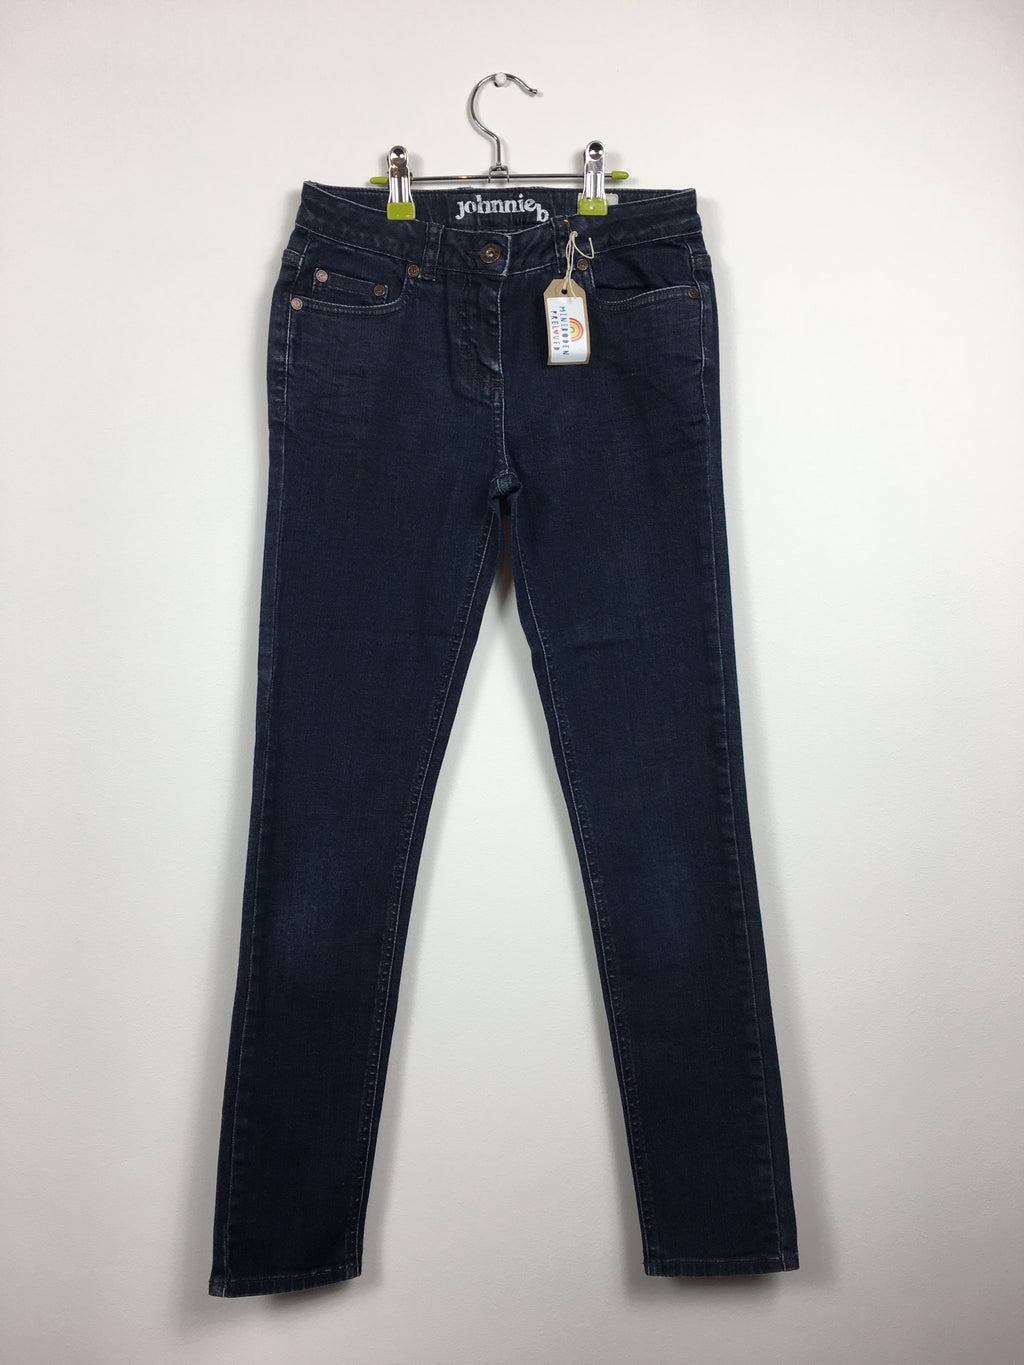 Dark Denim Slim leg Jeans waist 24L (9-10 years)